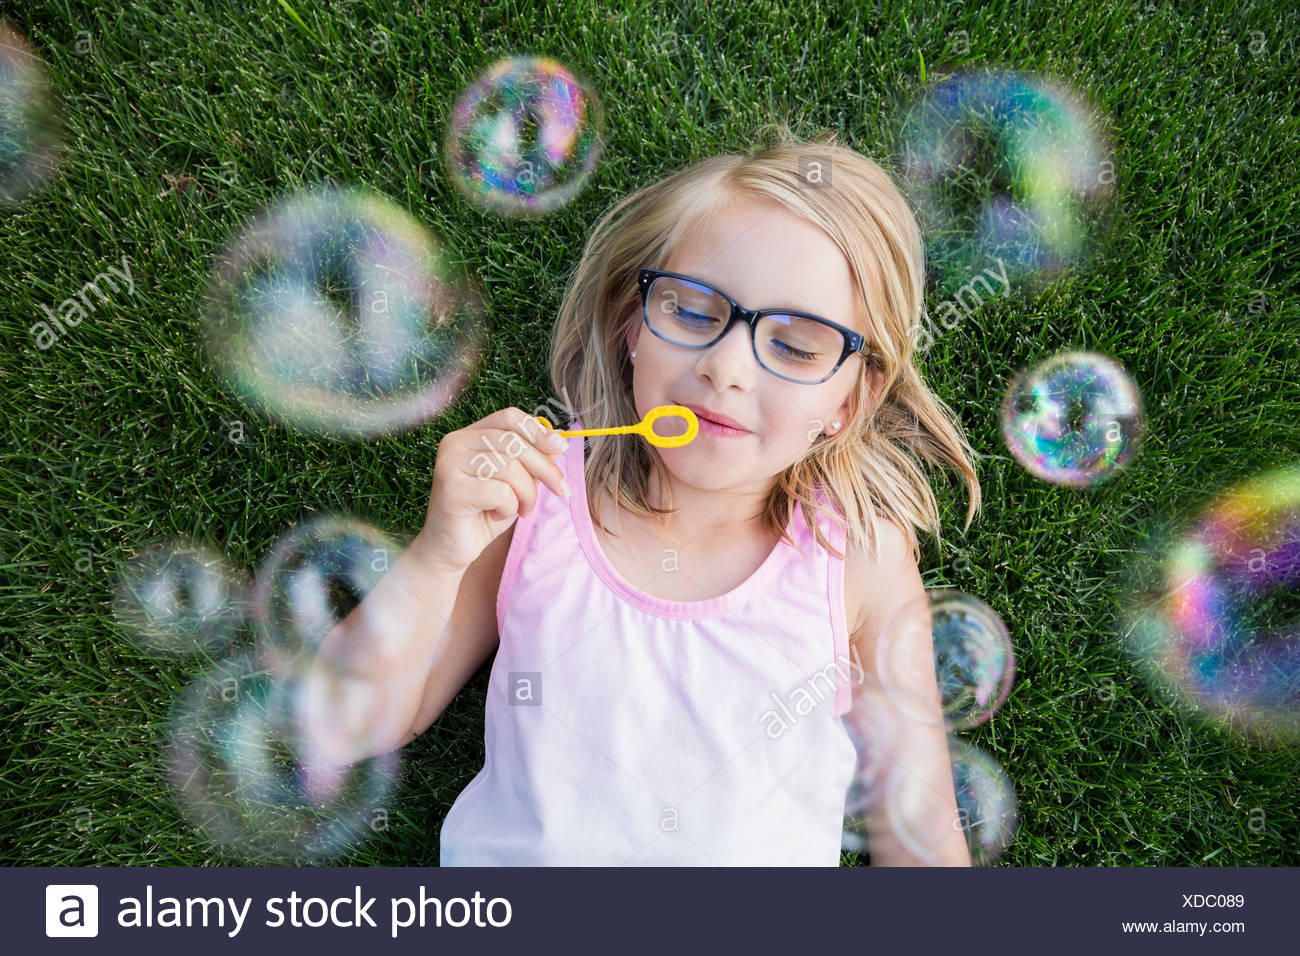 Overhead view blonde girl with eyeglasses blowing bubbles Stock Photo